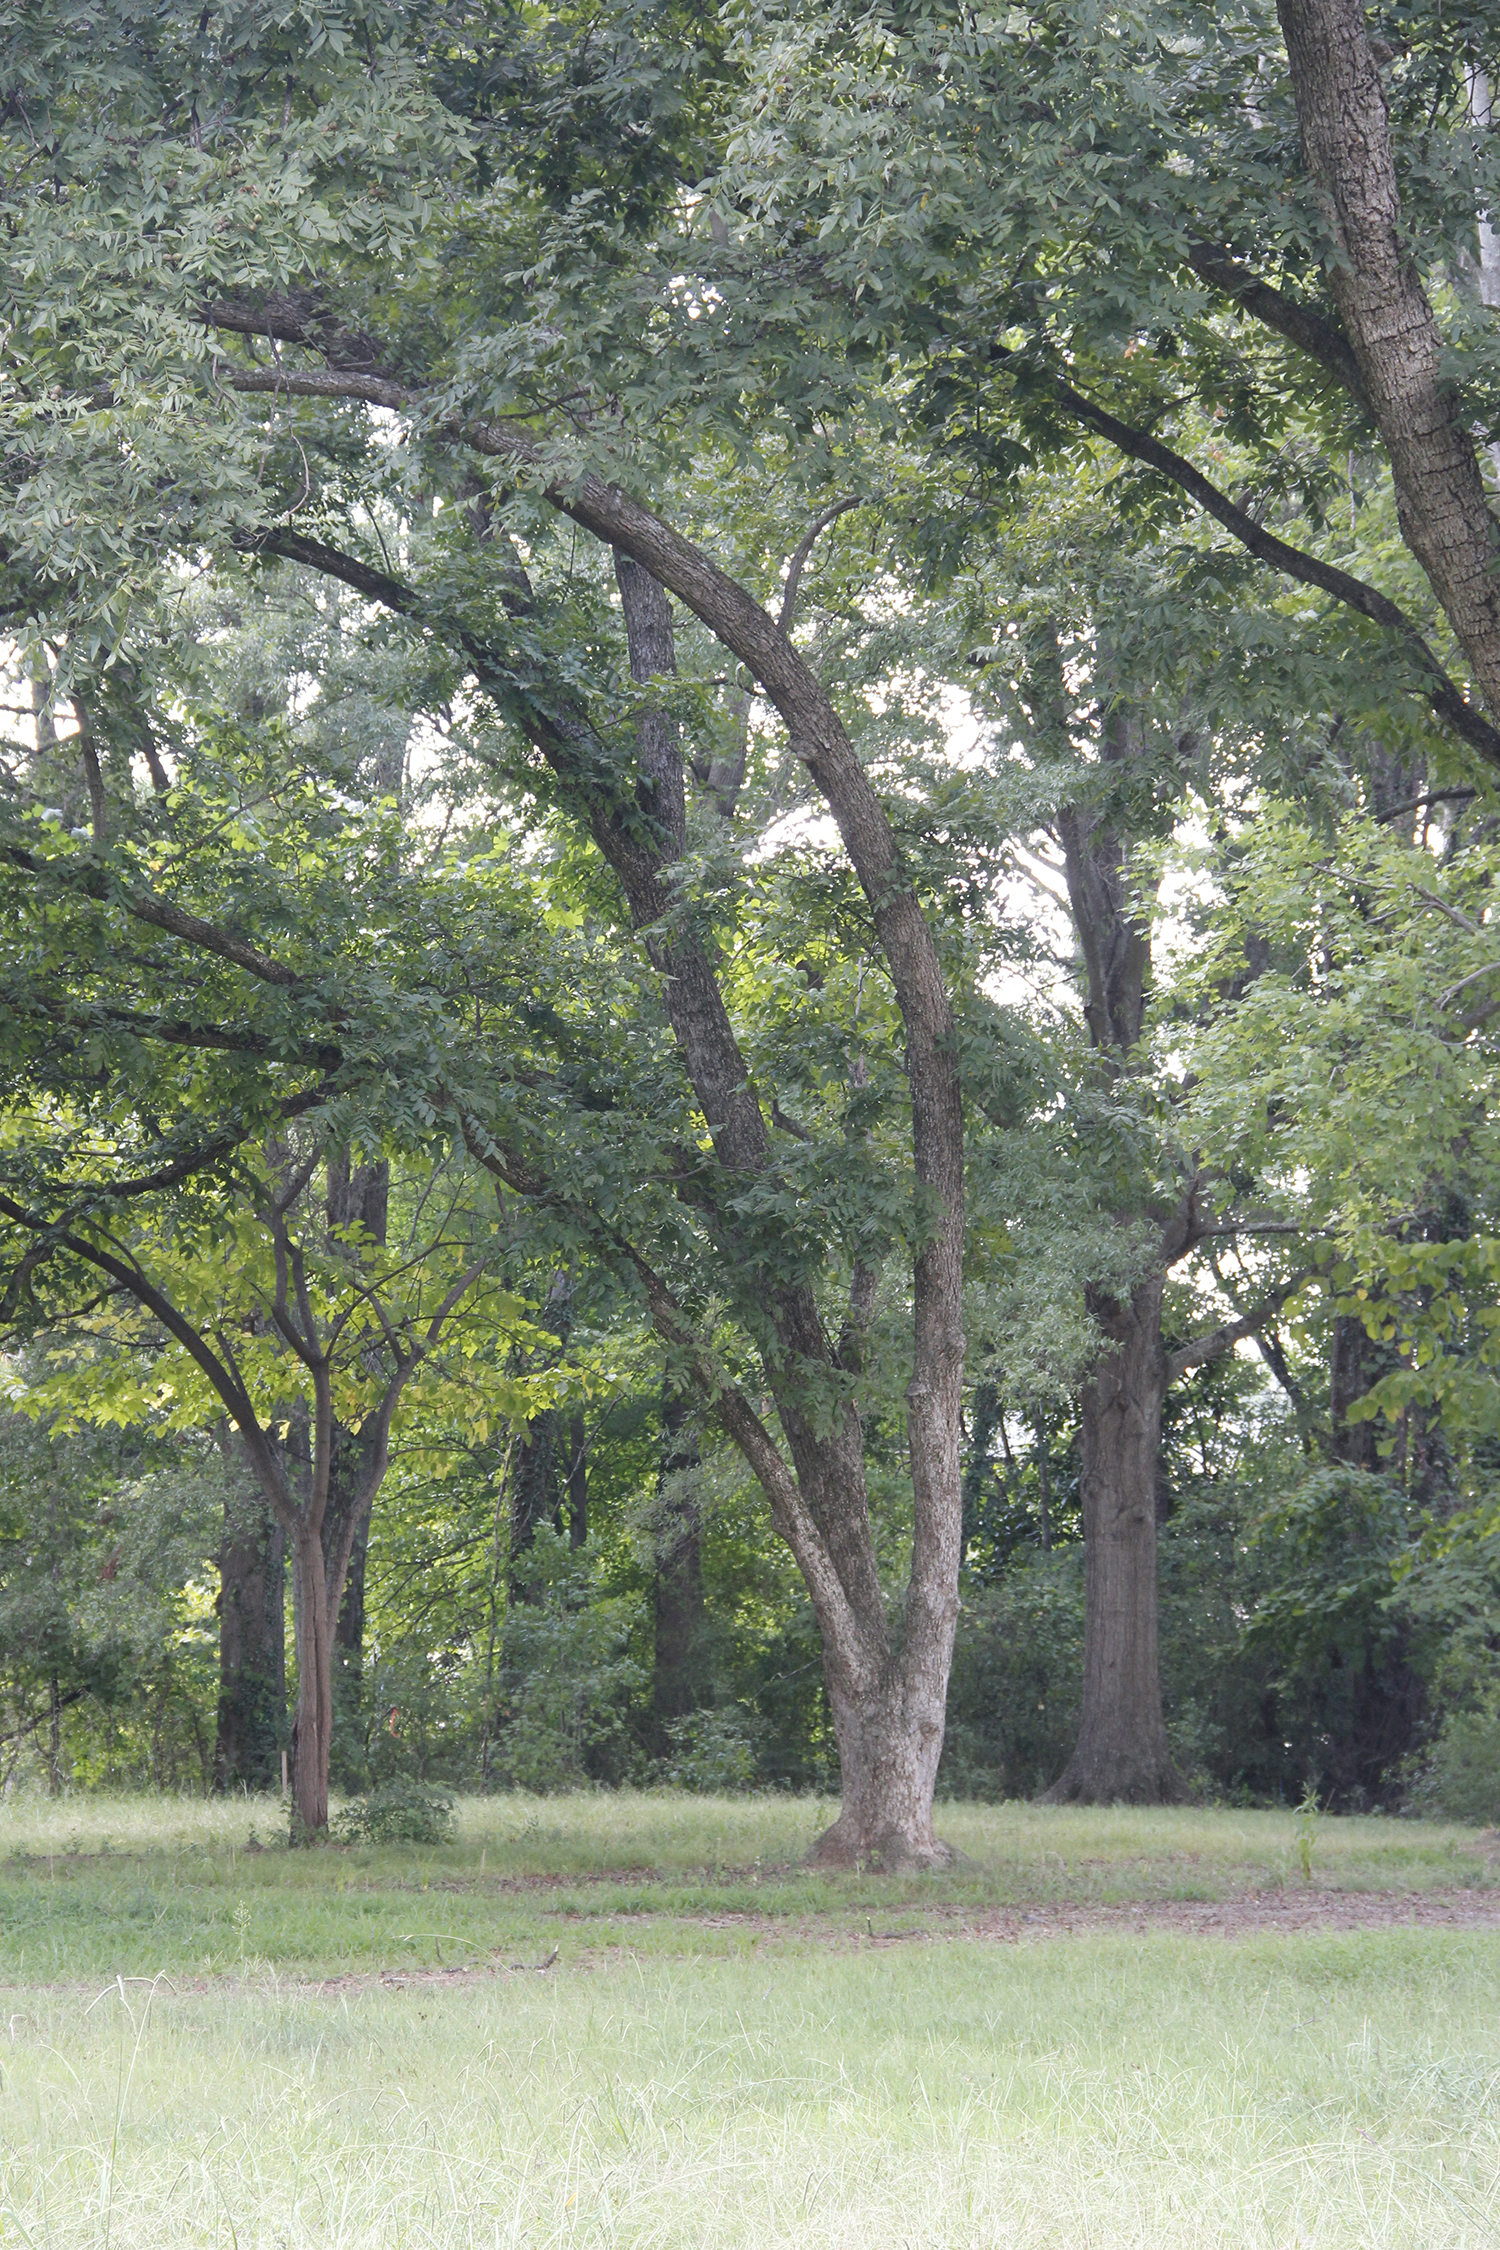 Older trees are an interest point for the Town of Matthews.   News Above Town:  The heat is on as the temps climb back to the upper 80s. Expect some clouds.   News Around Town:  A local moms group rallied around Tammy Panovich as her husband, Brad, was kept at work (WCNC) watching Florence creep in. In an effort to provide meals to the station crew, the moms, led by Matthews mom Amanda McGrath, raised $1325 in under a day. The idea was so popular the  Fanovich tee shirt  was born. In two weeks 3,100 shirts were sold and $37,001.05 has been raised for charities aiding in storm relief.